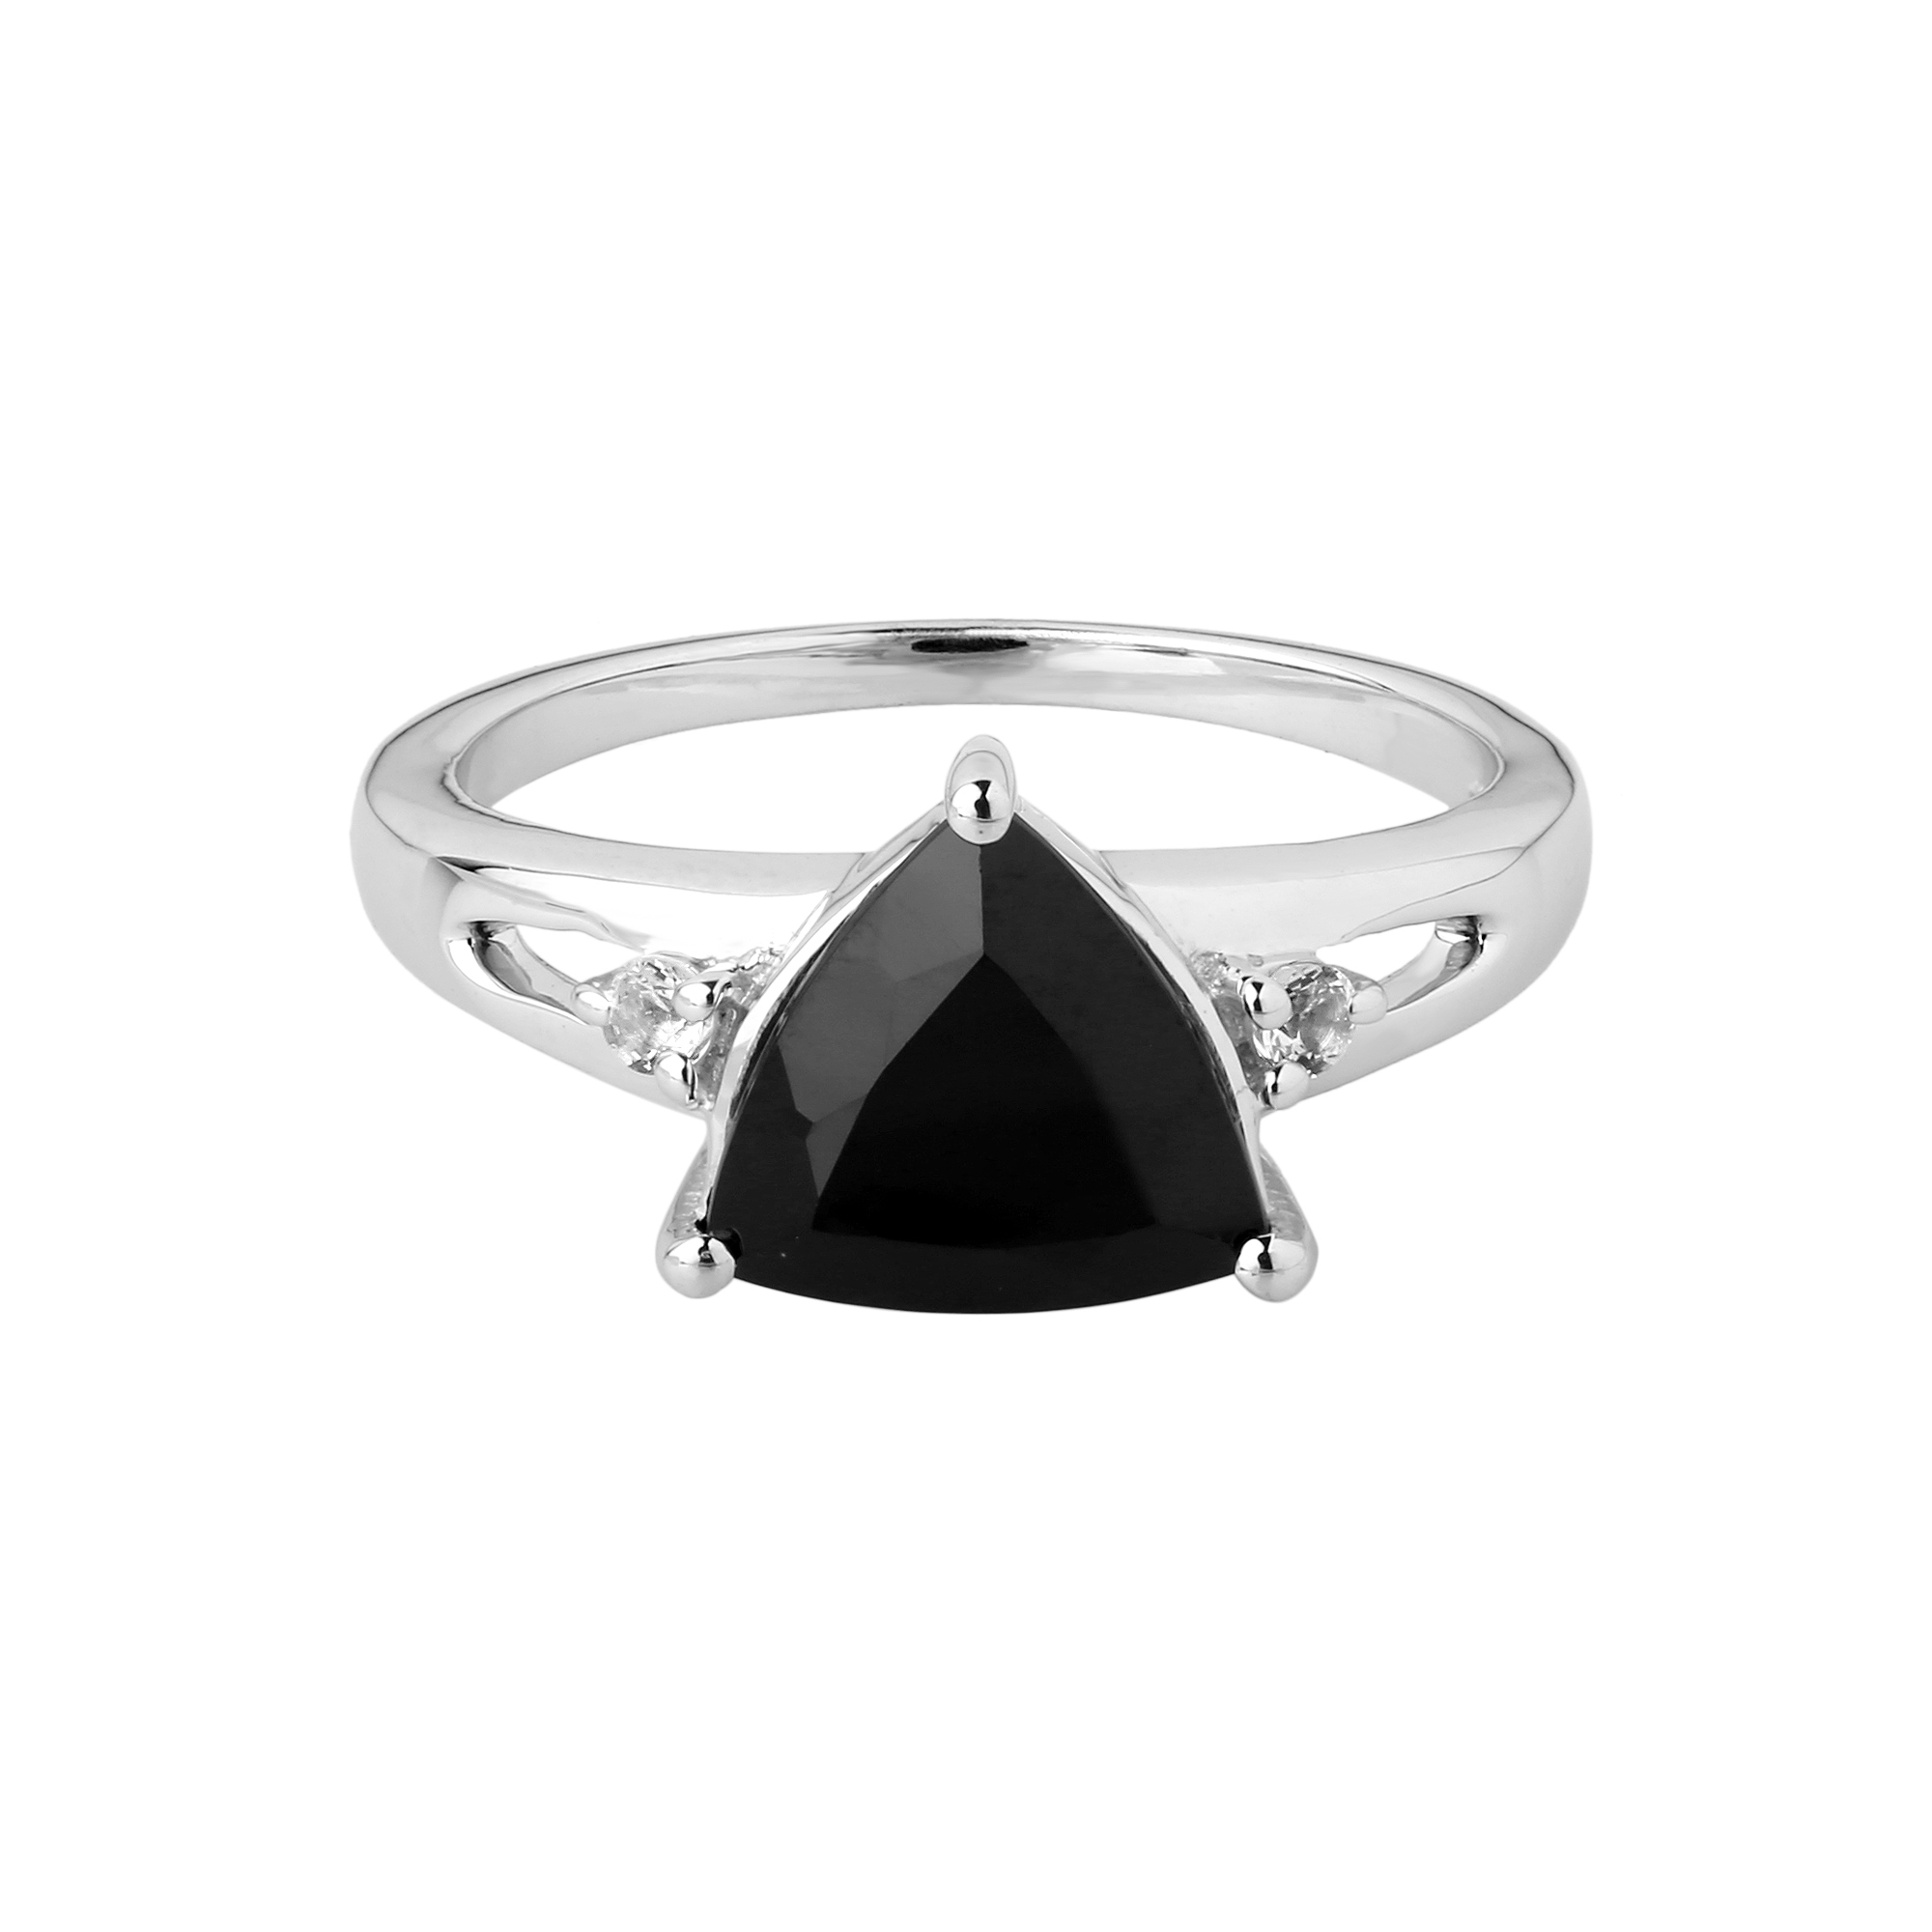 Black spinel trillion solitaire ring